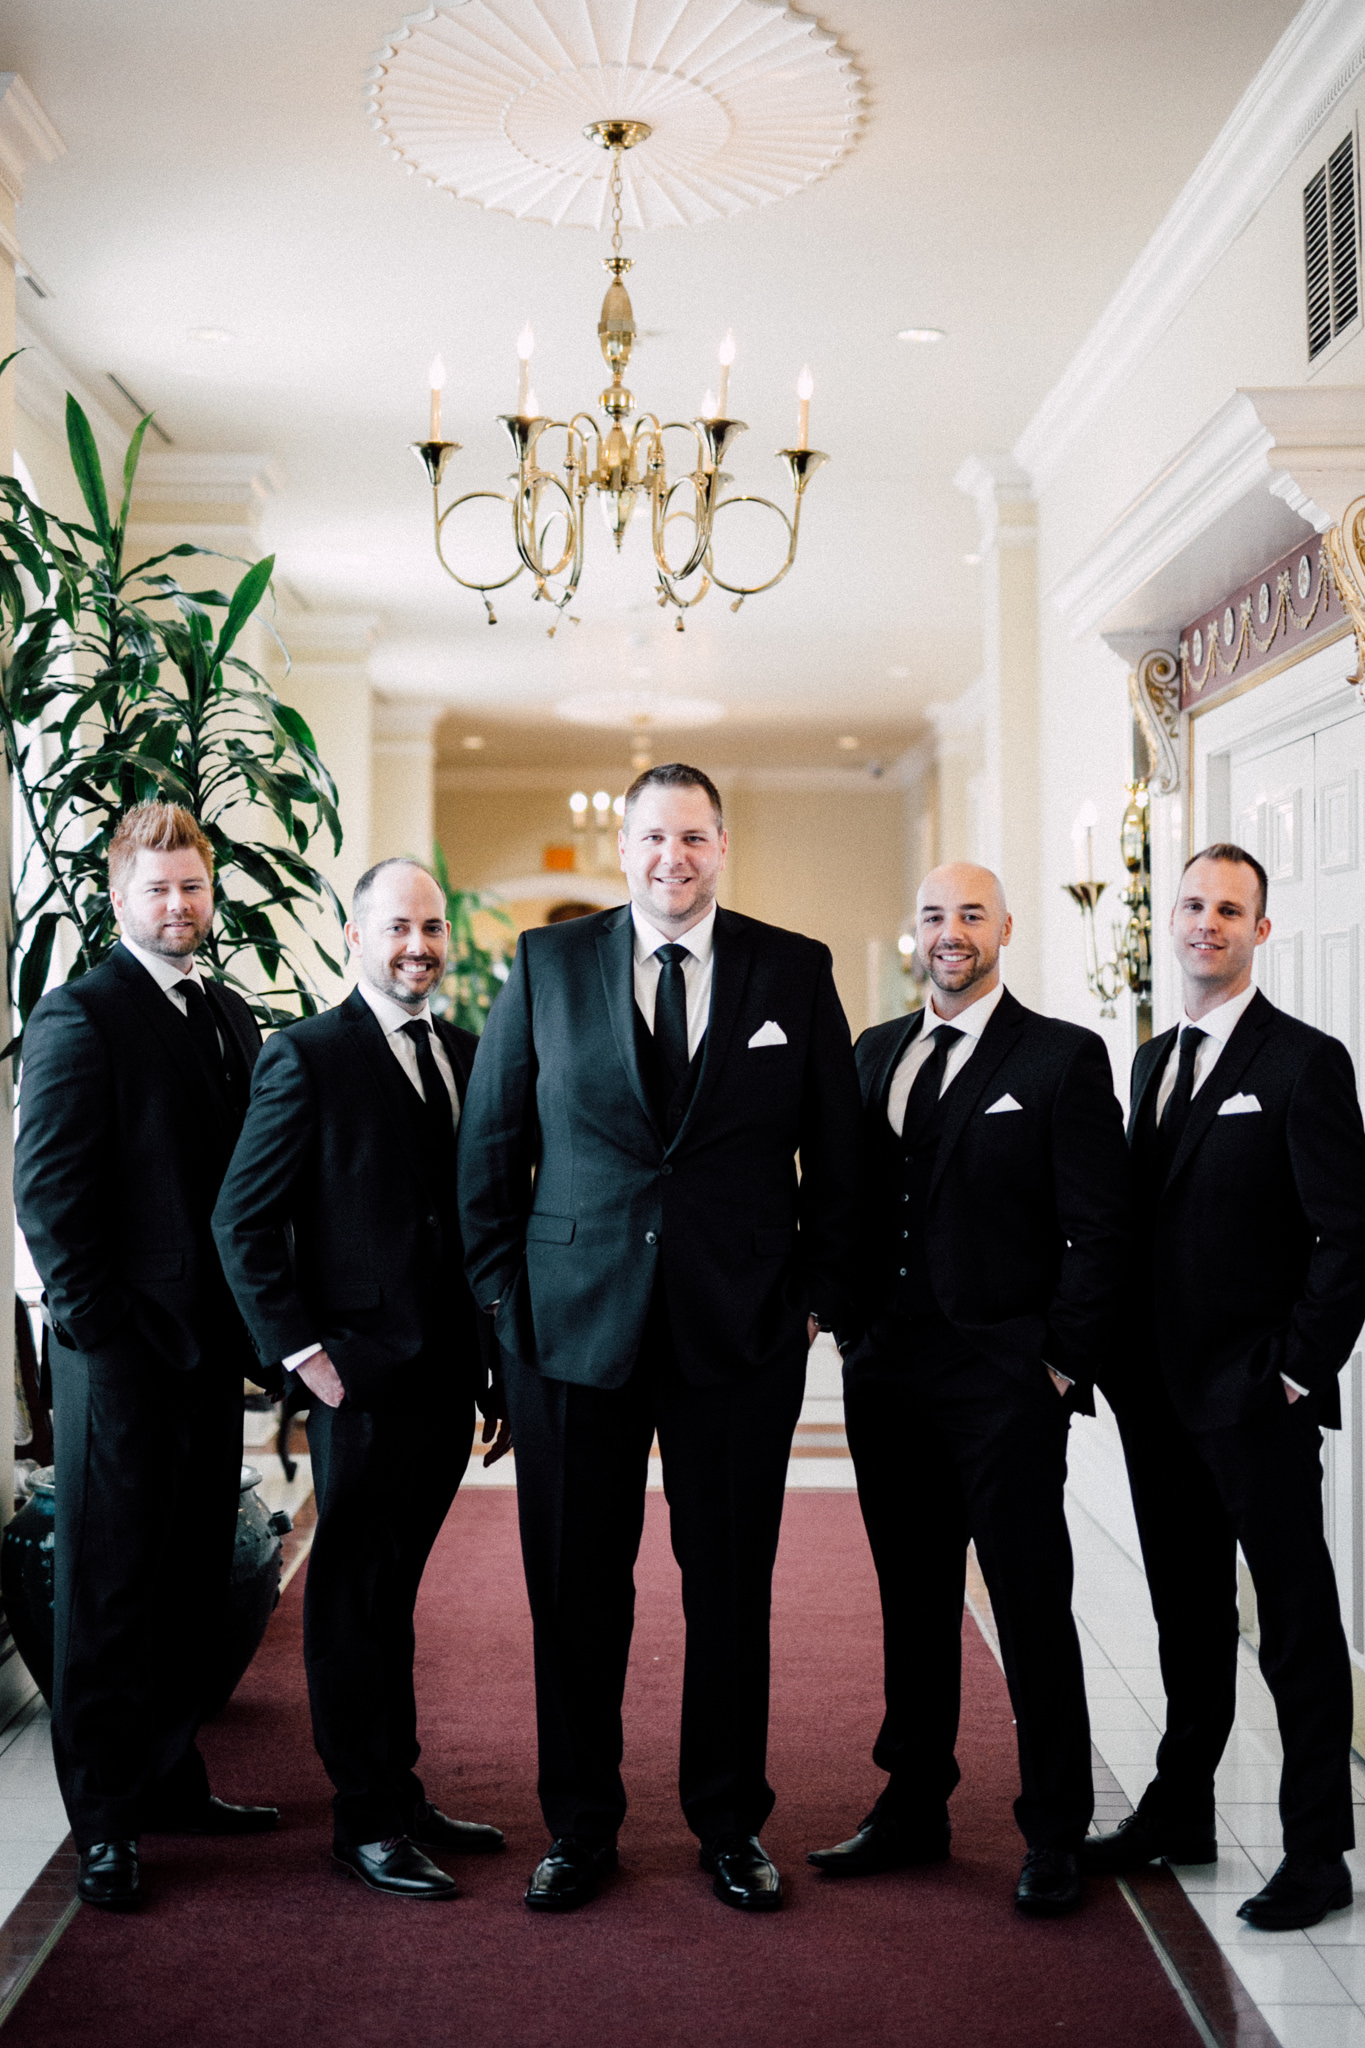 Queens-Landing-Niagara-on-the-Lake-Wedding-photography-by-Simply-Lace-020.JPG